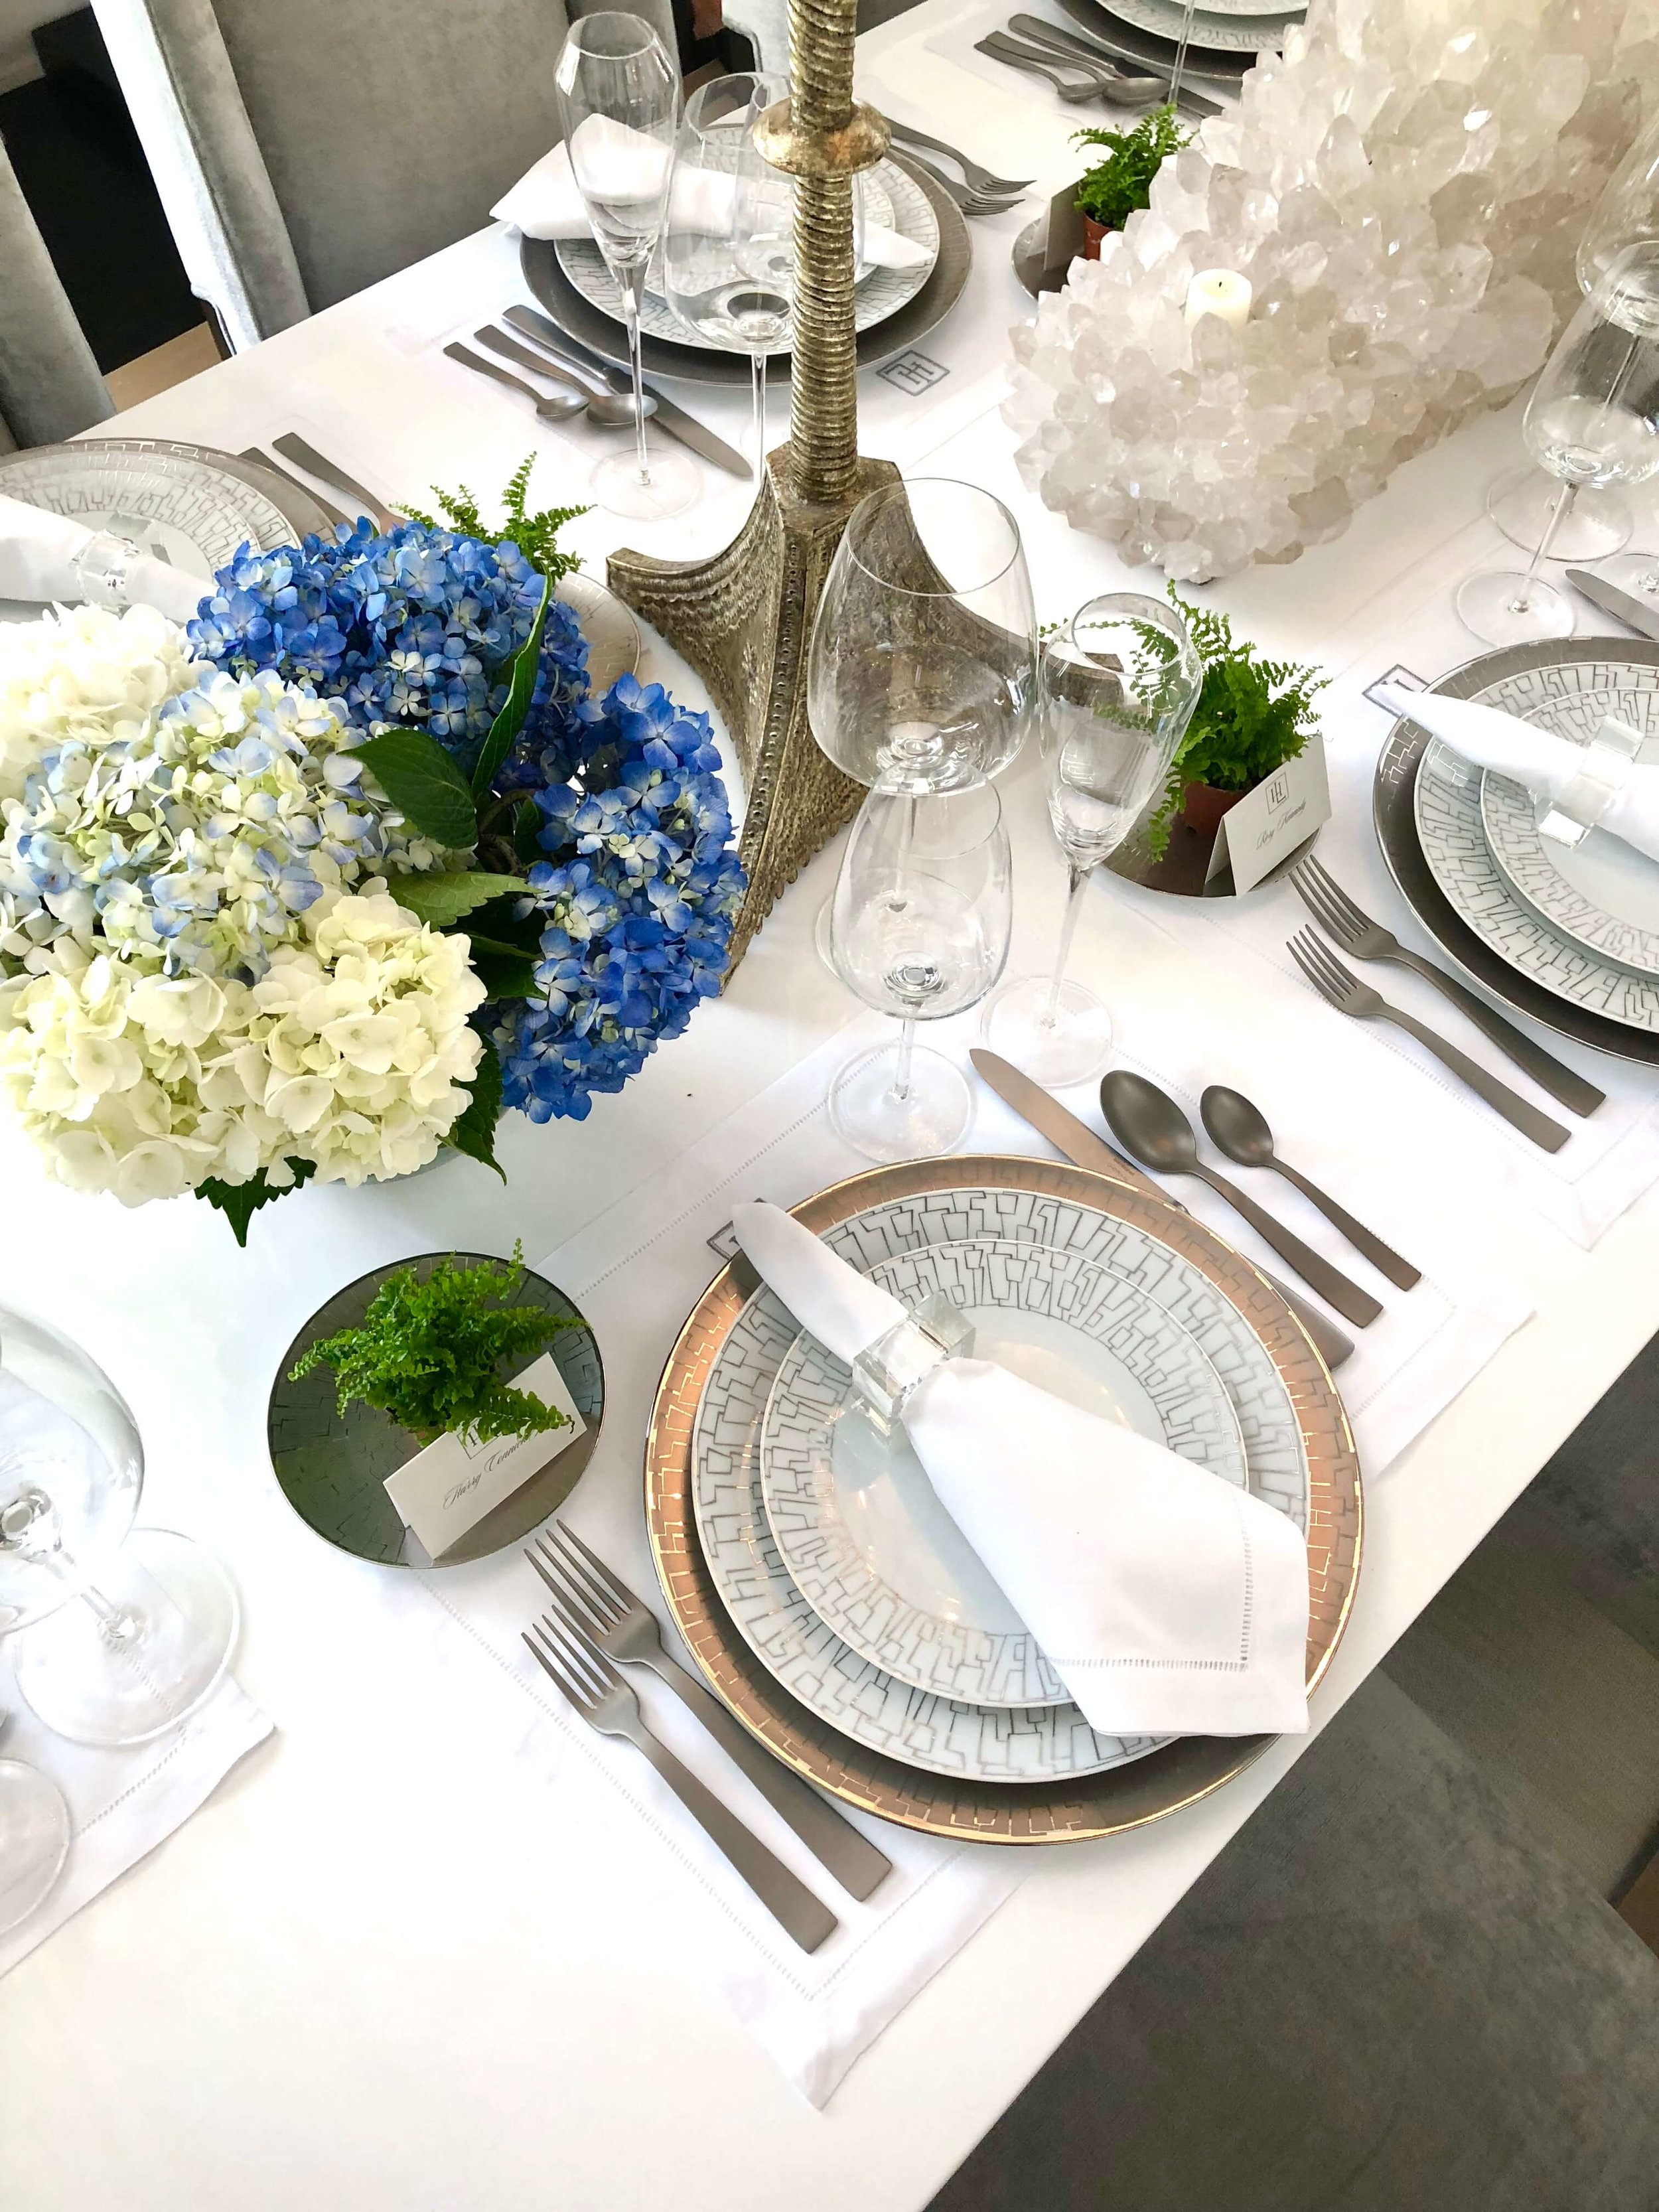 Dining room was designed by Elizabeth Lamont, from Room by the Beach, at the Pasadena Showcase House of Design 2018 #diningroom #diningroomideas #placesetting #entertaining #tabletop